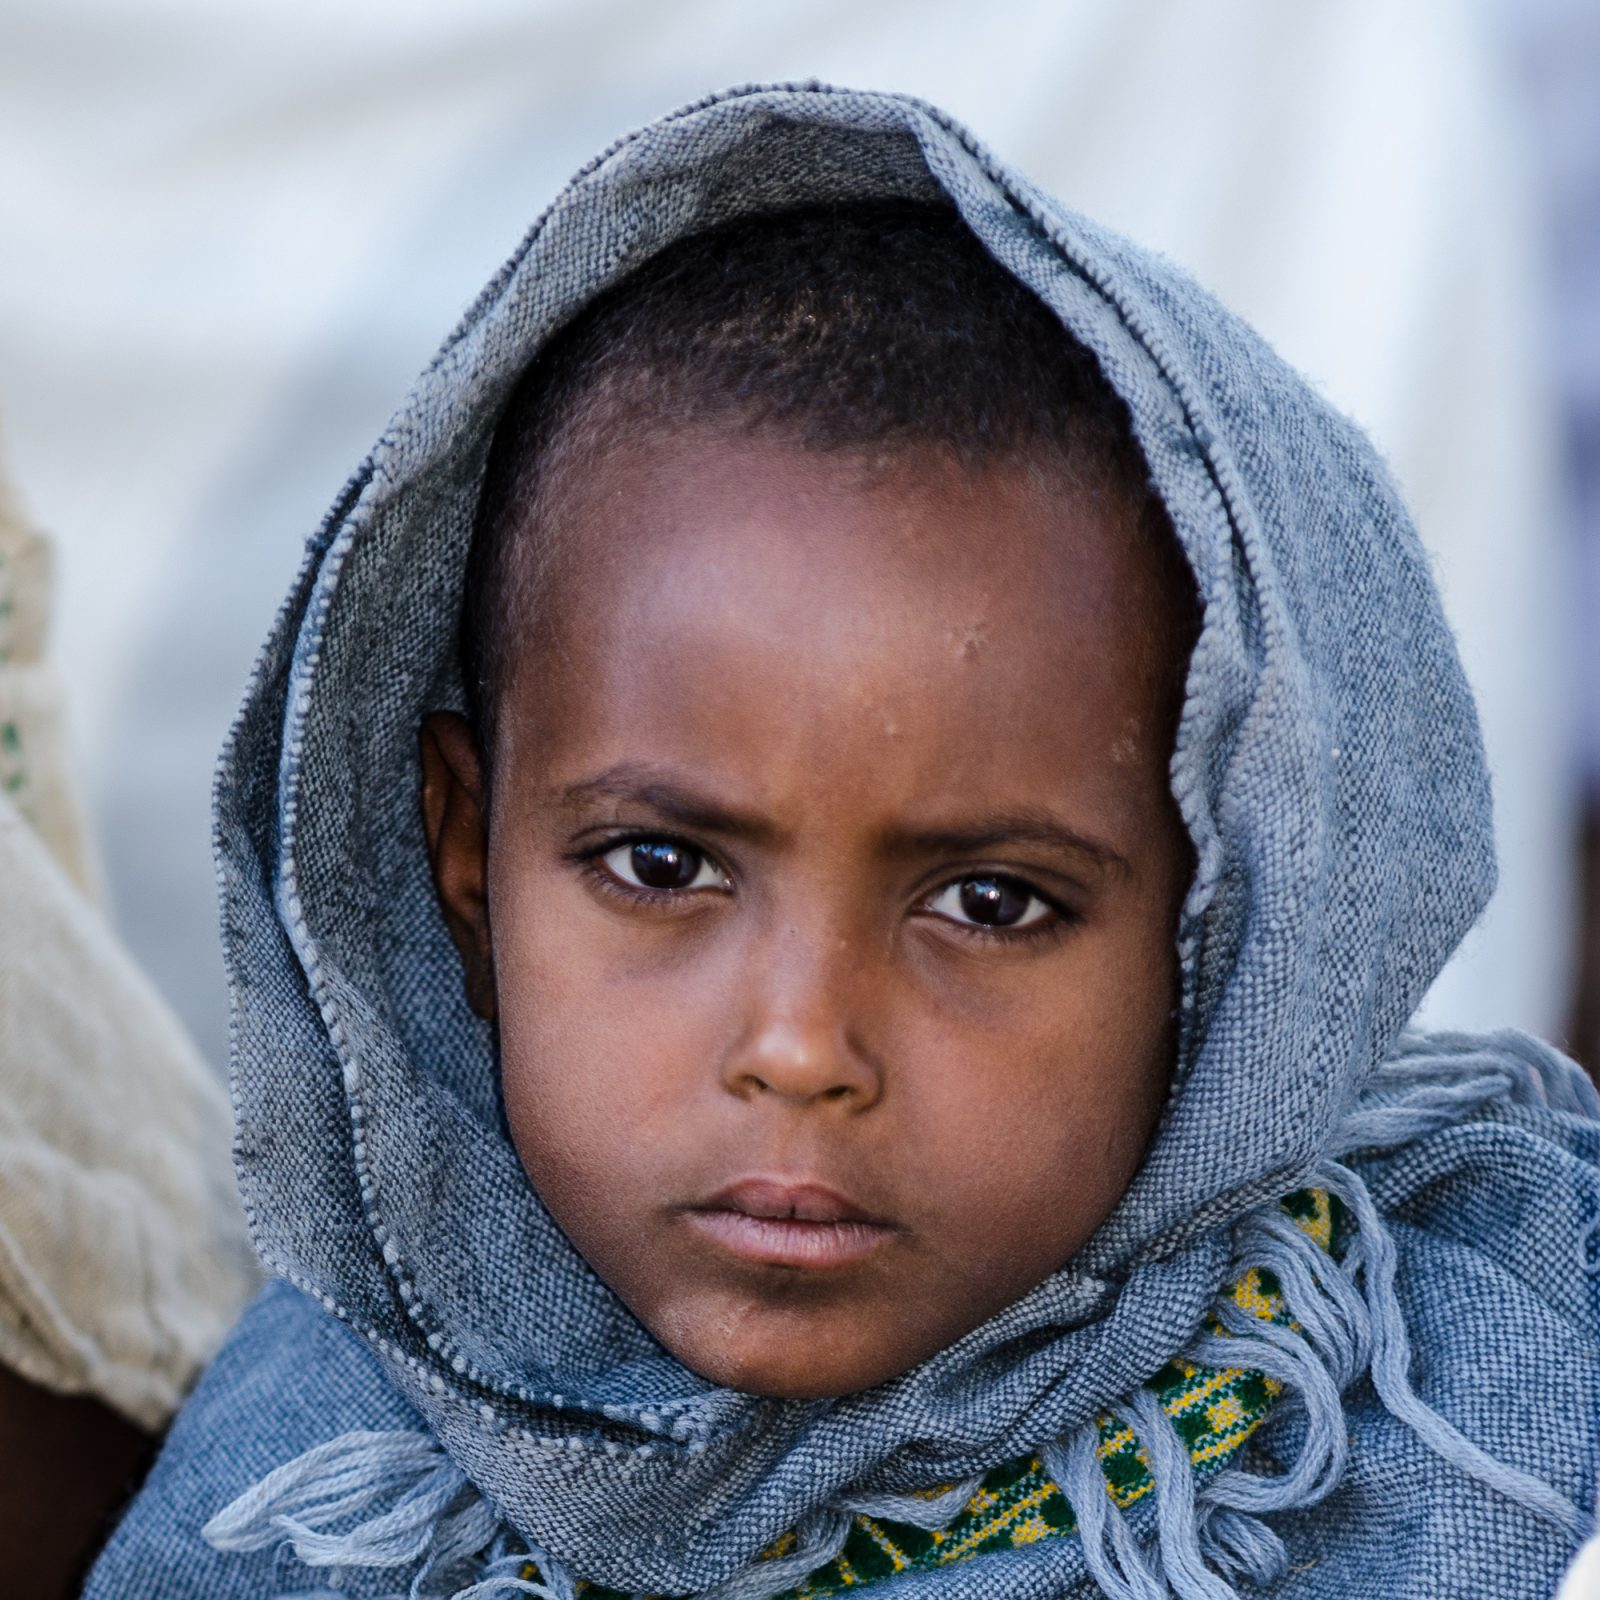 Girl in Ethiopia